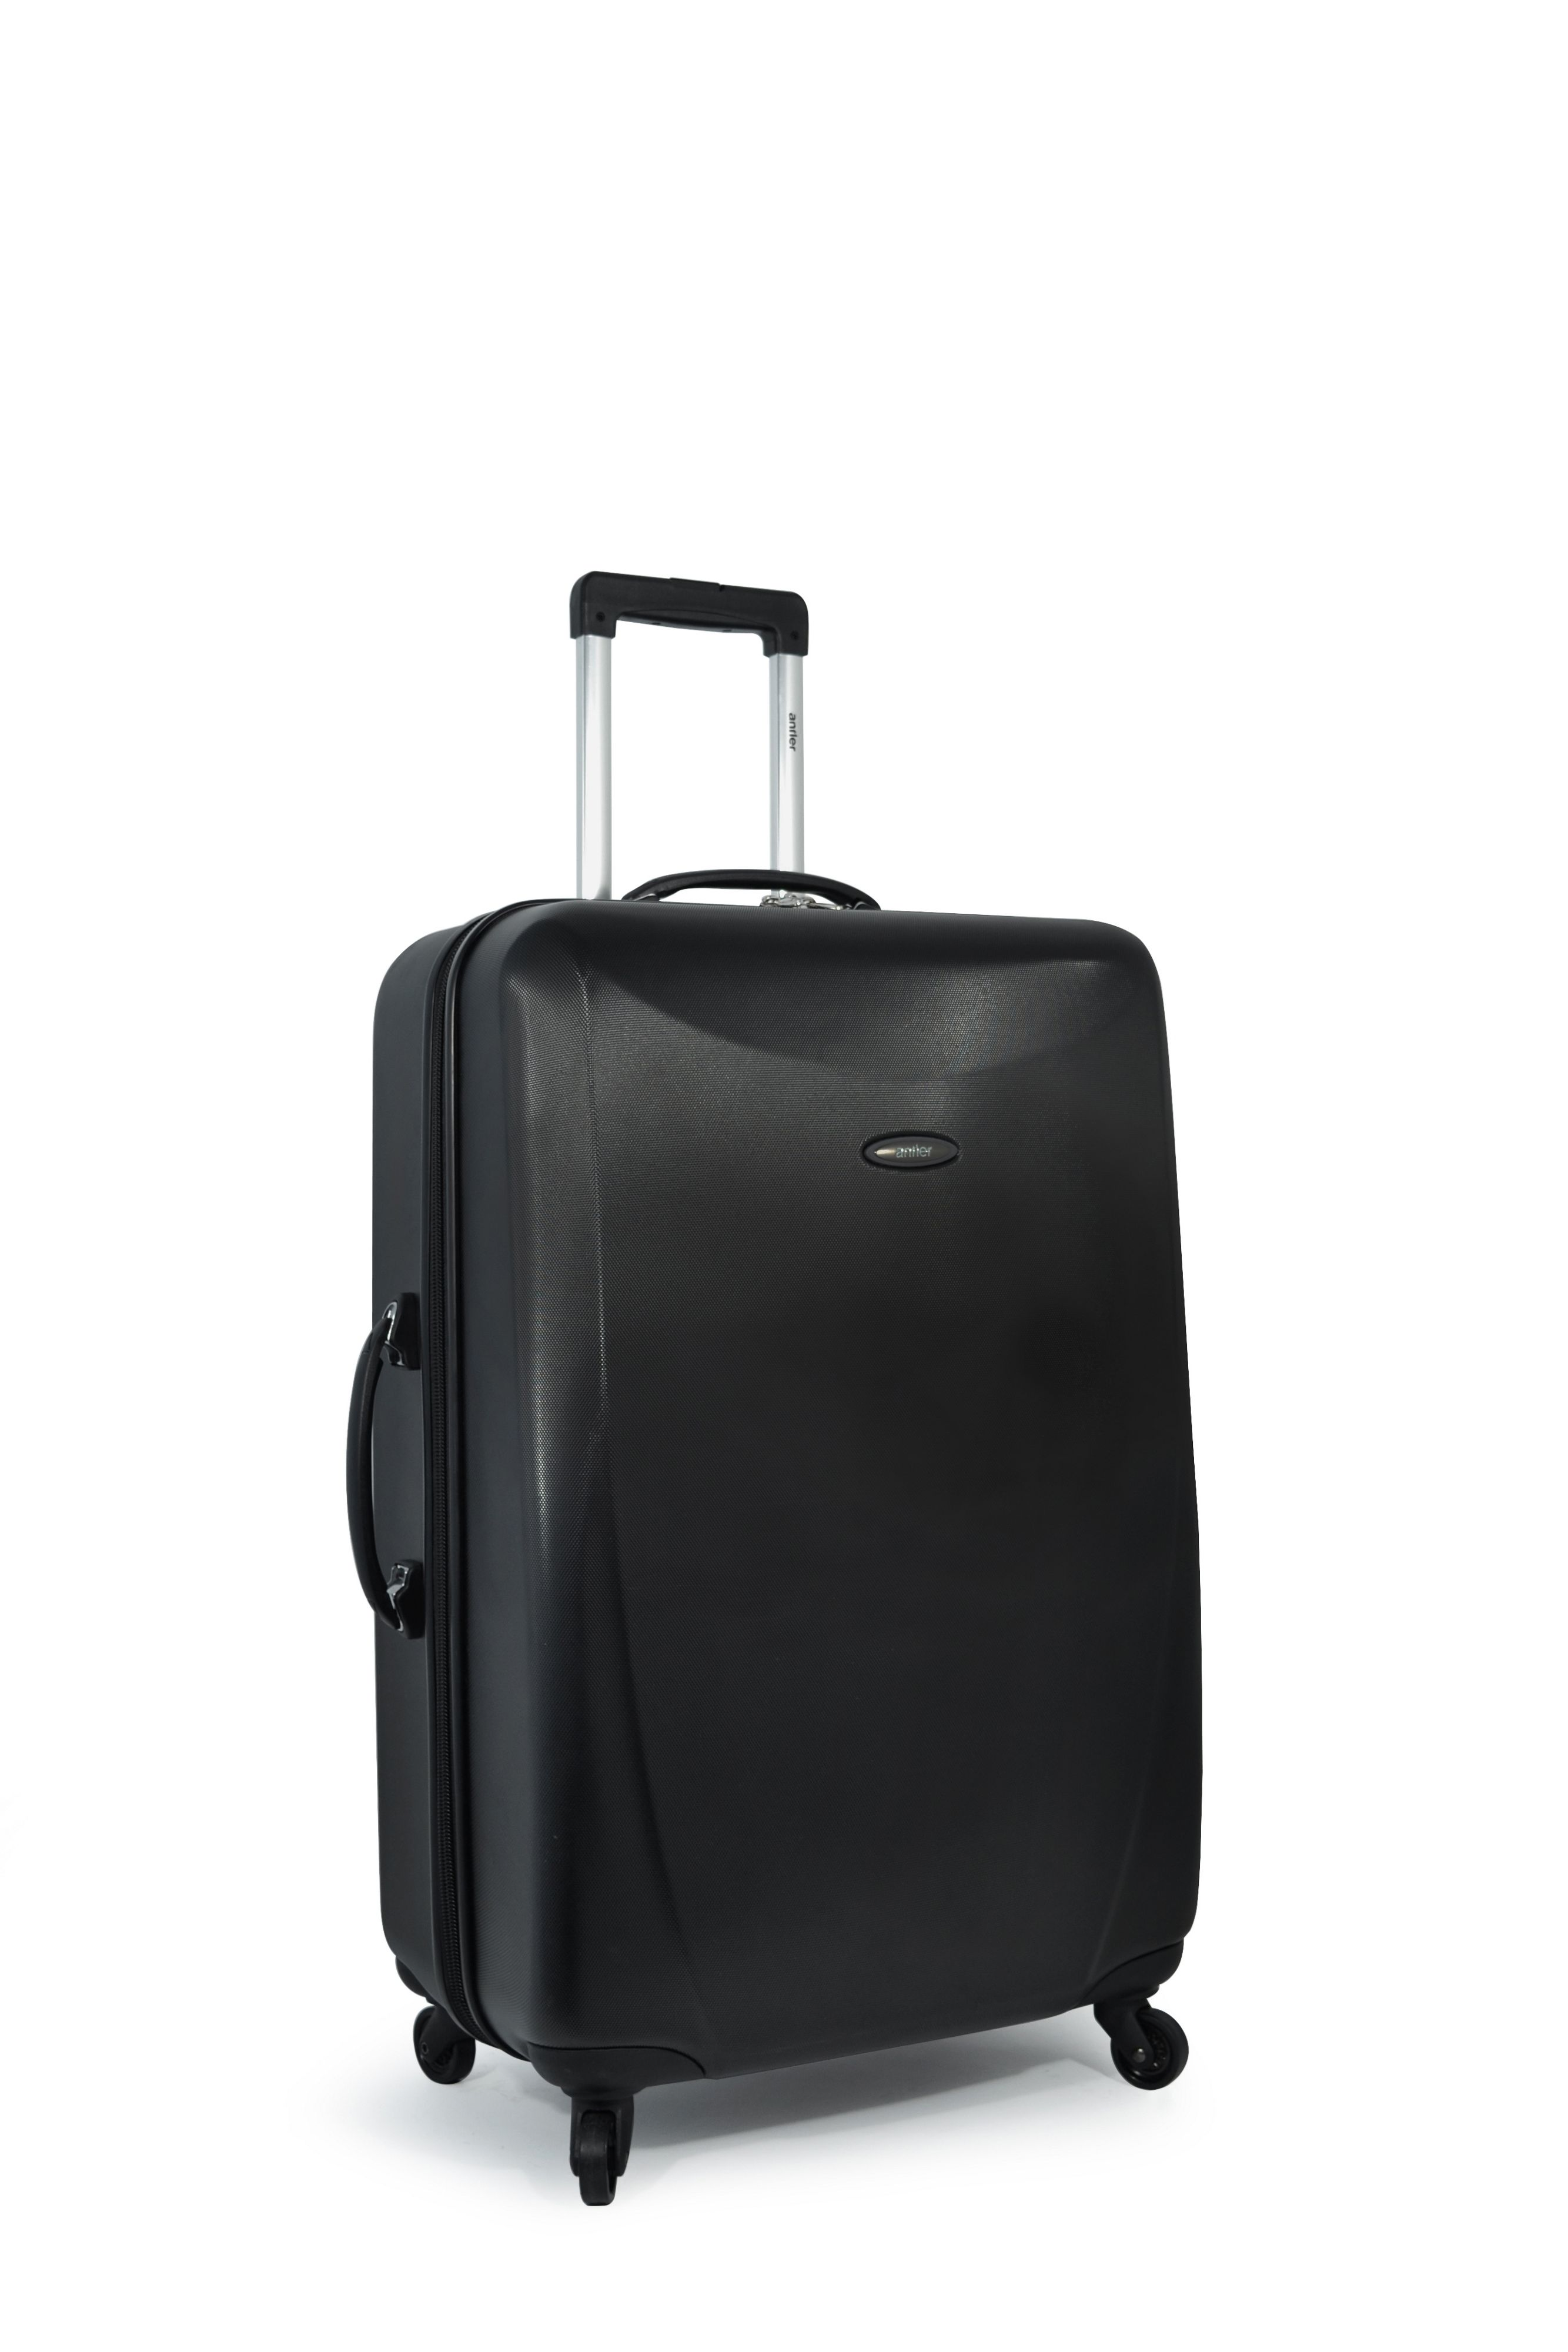 Talara 4 wheel large suitcase